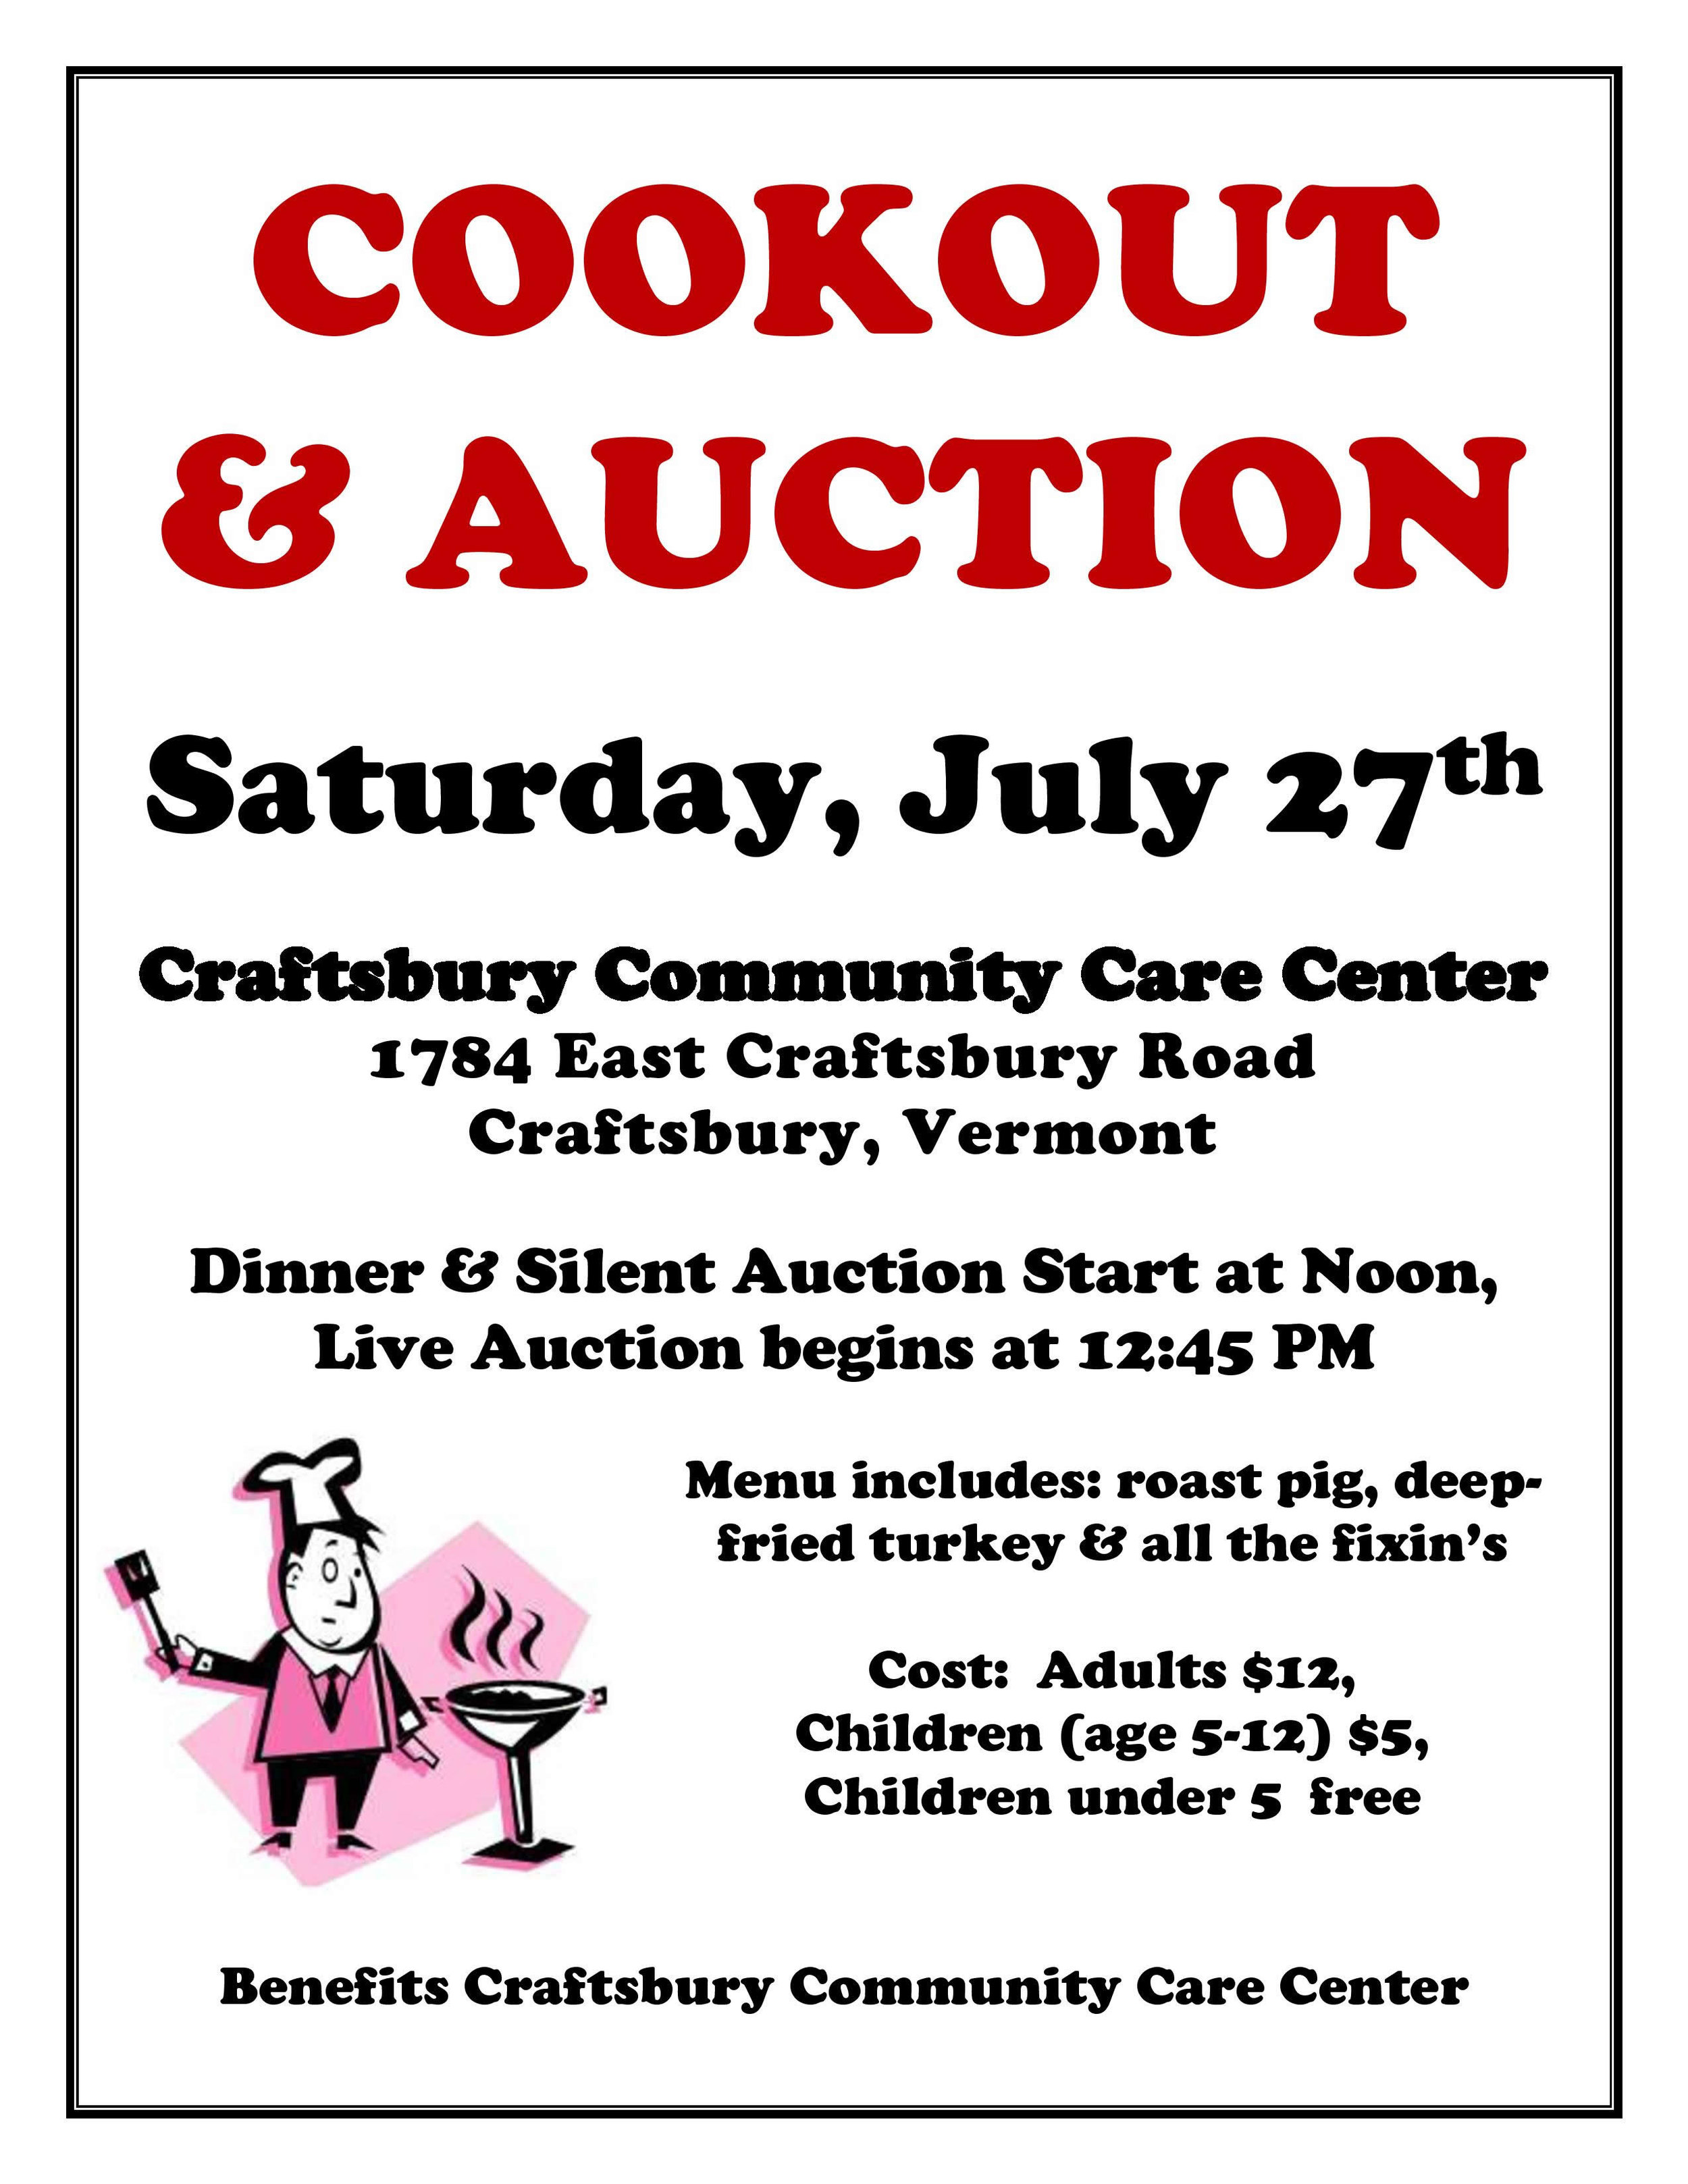 COOKOUT AND AUCTION FLYER 2019-page-001 (1).jpg